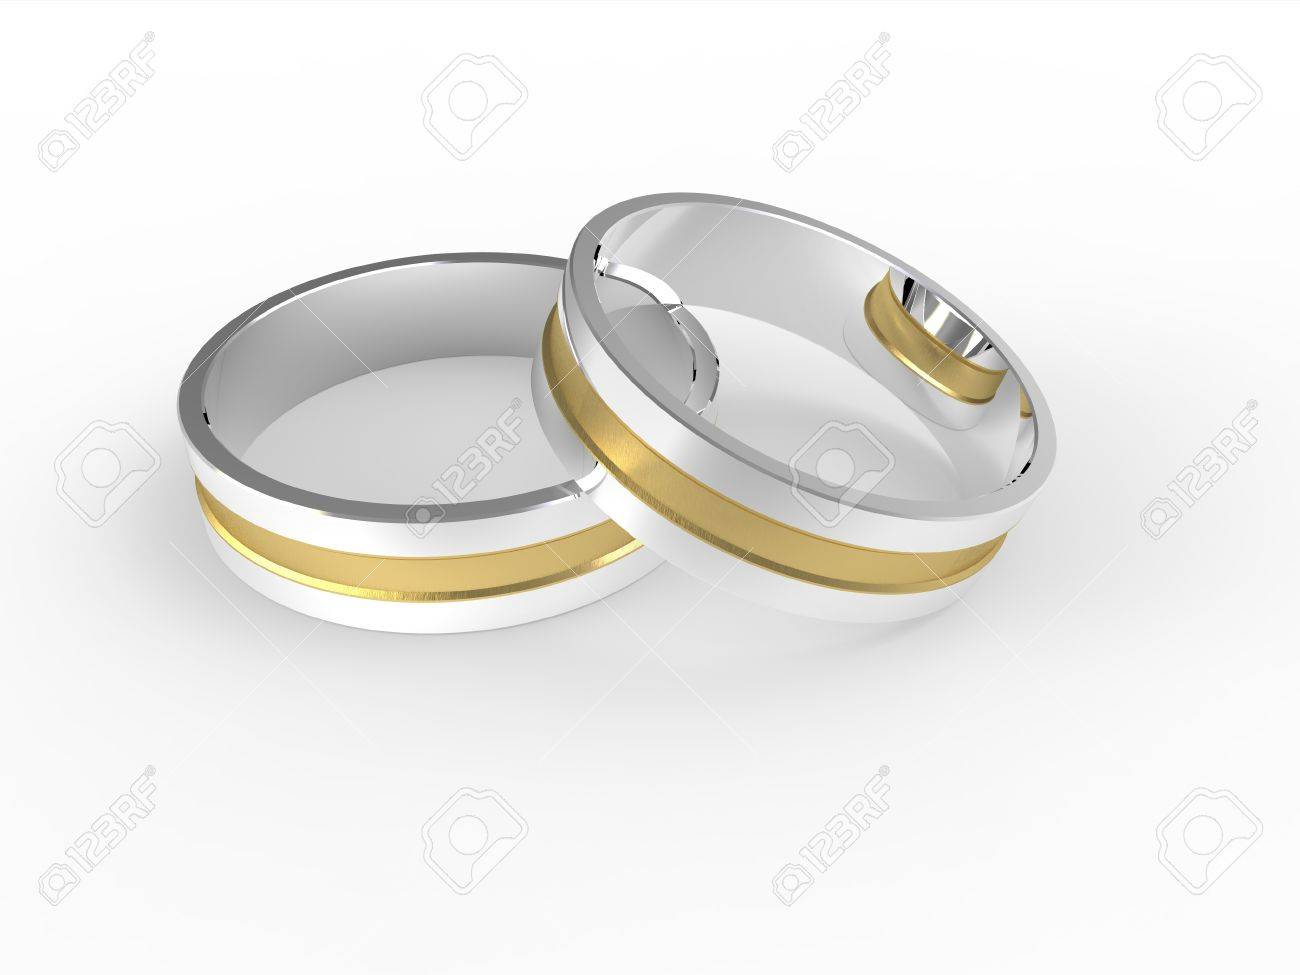 stock image gold silver wedding rings 3d image silver wedding rings Gold and silver wedding rings 3d